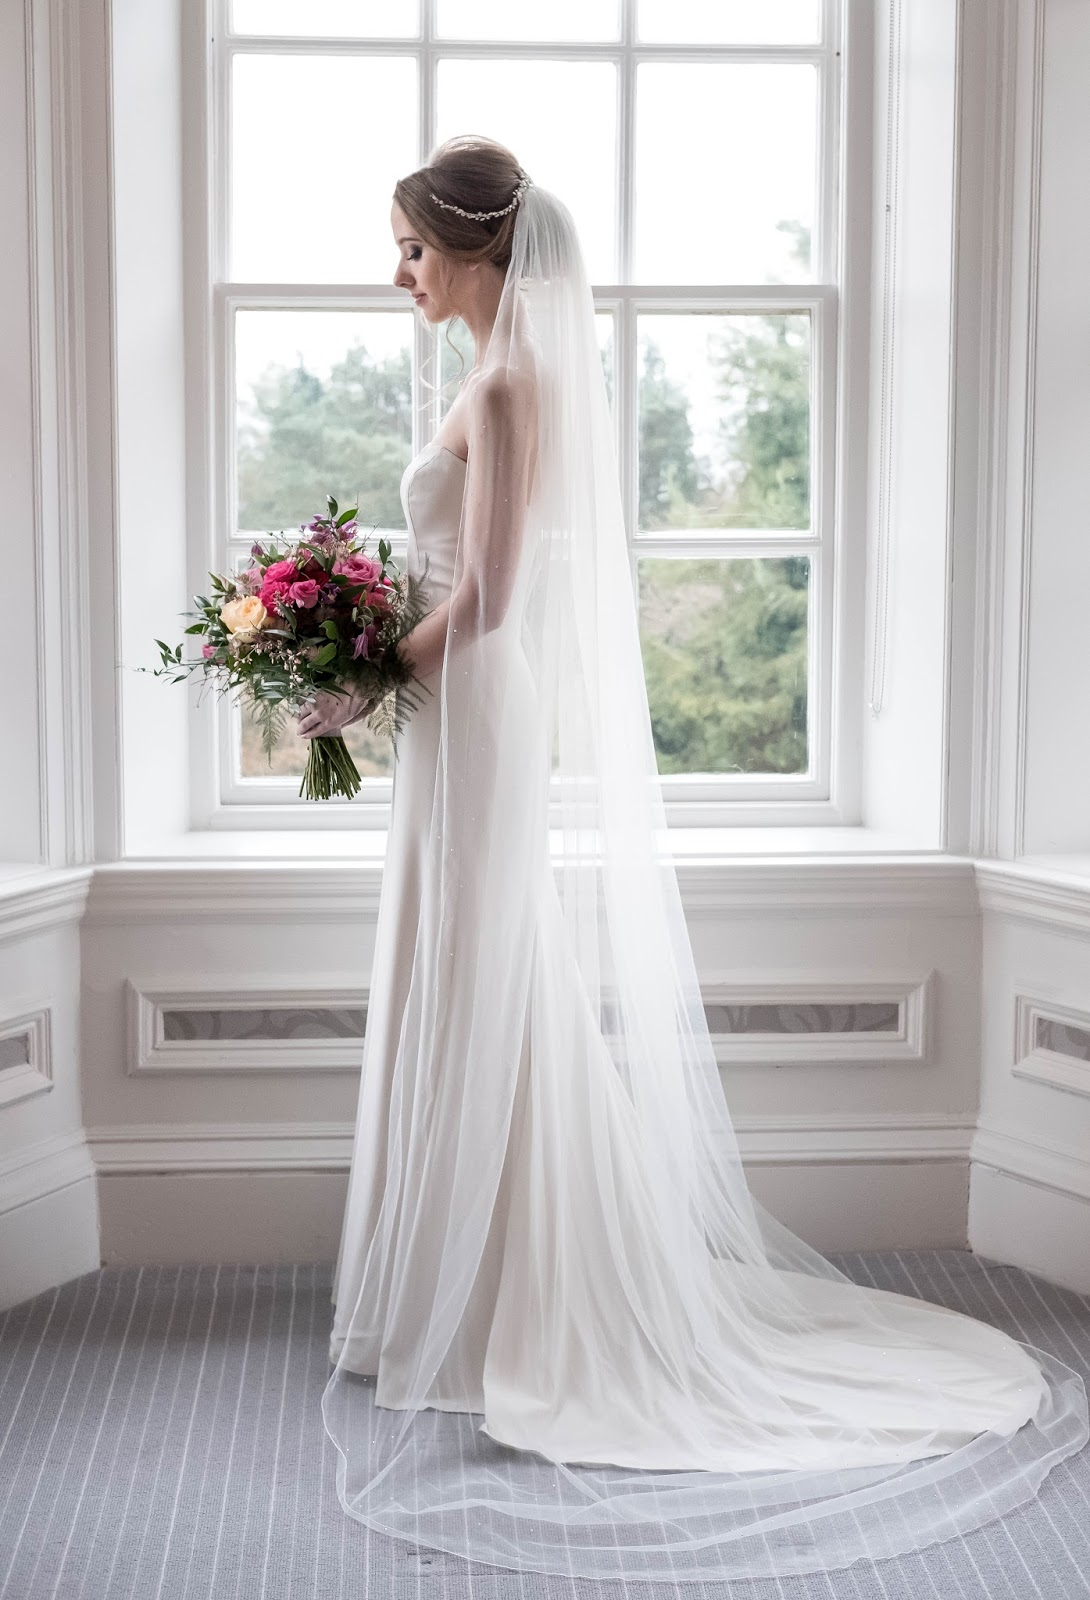 Wedding Full Length Super Long Bridal Veil